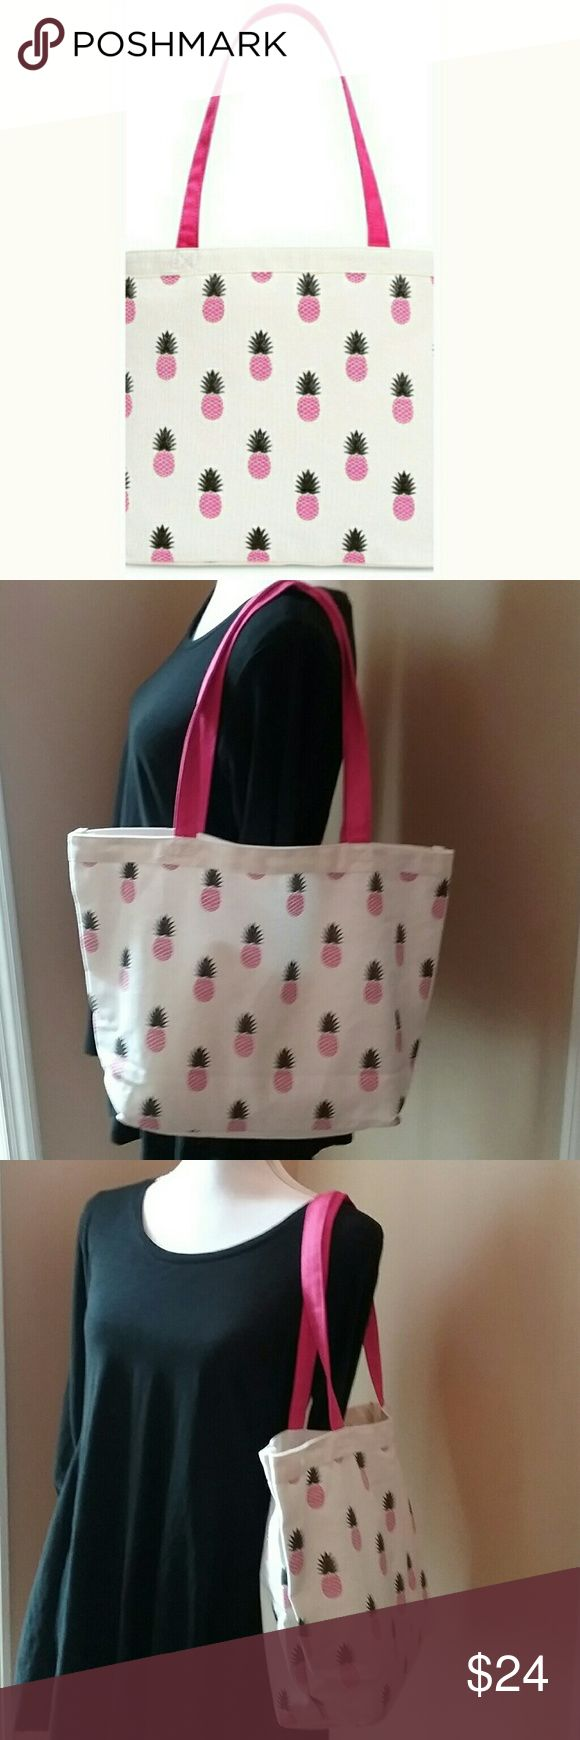 """🆕Macy's Tropical Pineapple Canvas Beach Bag This canvas beach bag with pink pineapple overlay print is both fun and functional. No top closure. Unlined. Approximate measurements: 16.5""""l x 11.5""""h with 10"""" strap drop. Macy's Bags Totes"""